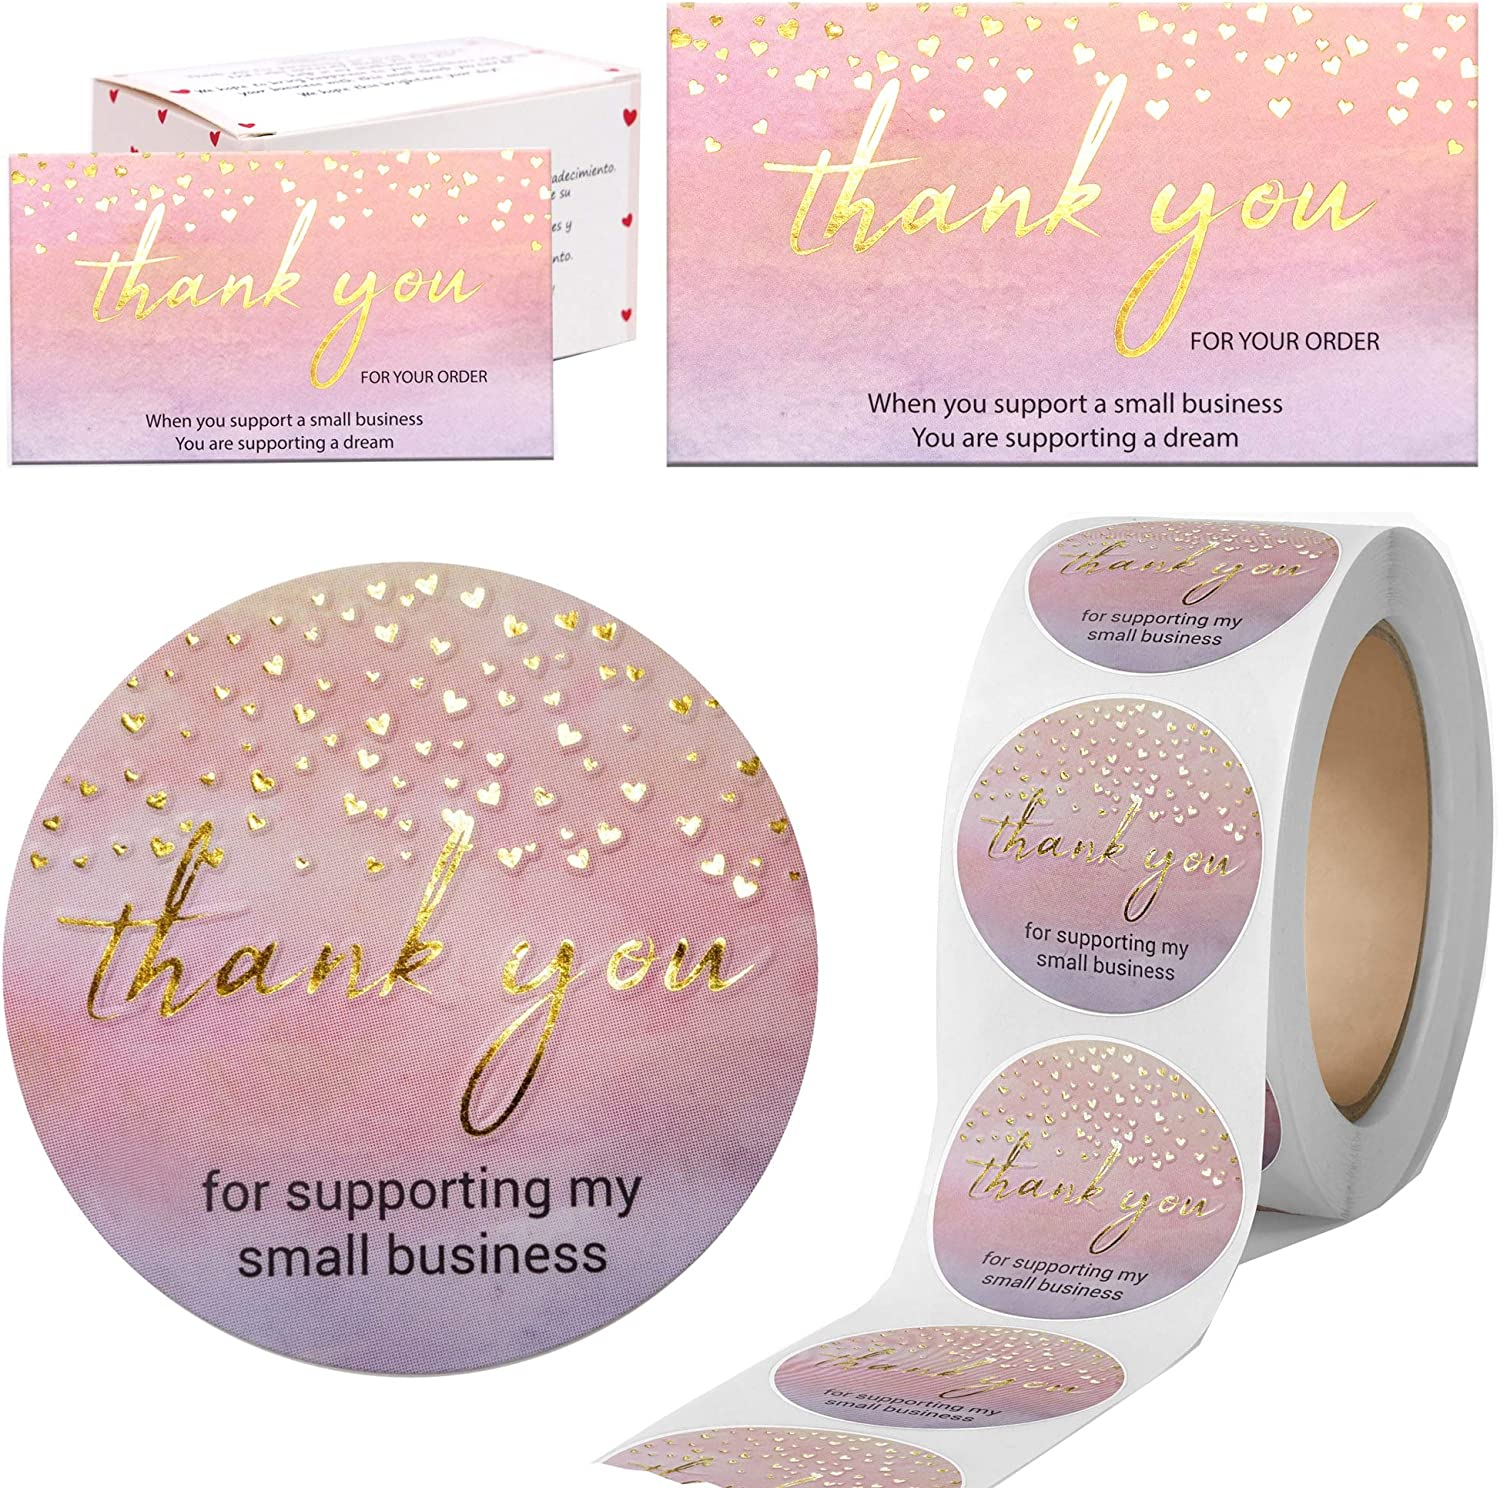 """Modern 5th - 500PCS Thank You for Supporting My Small Business Cards and Stickers Set, Watercolor with Gold Foil Hearts (3.5x2 inches 100pcs Cards and 1.5"""" Round 400pcs Stickers) for Package Inserts: Kitchen & Dining"""